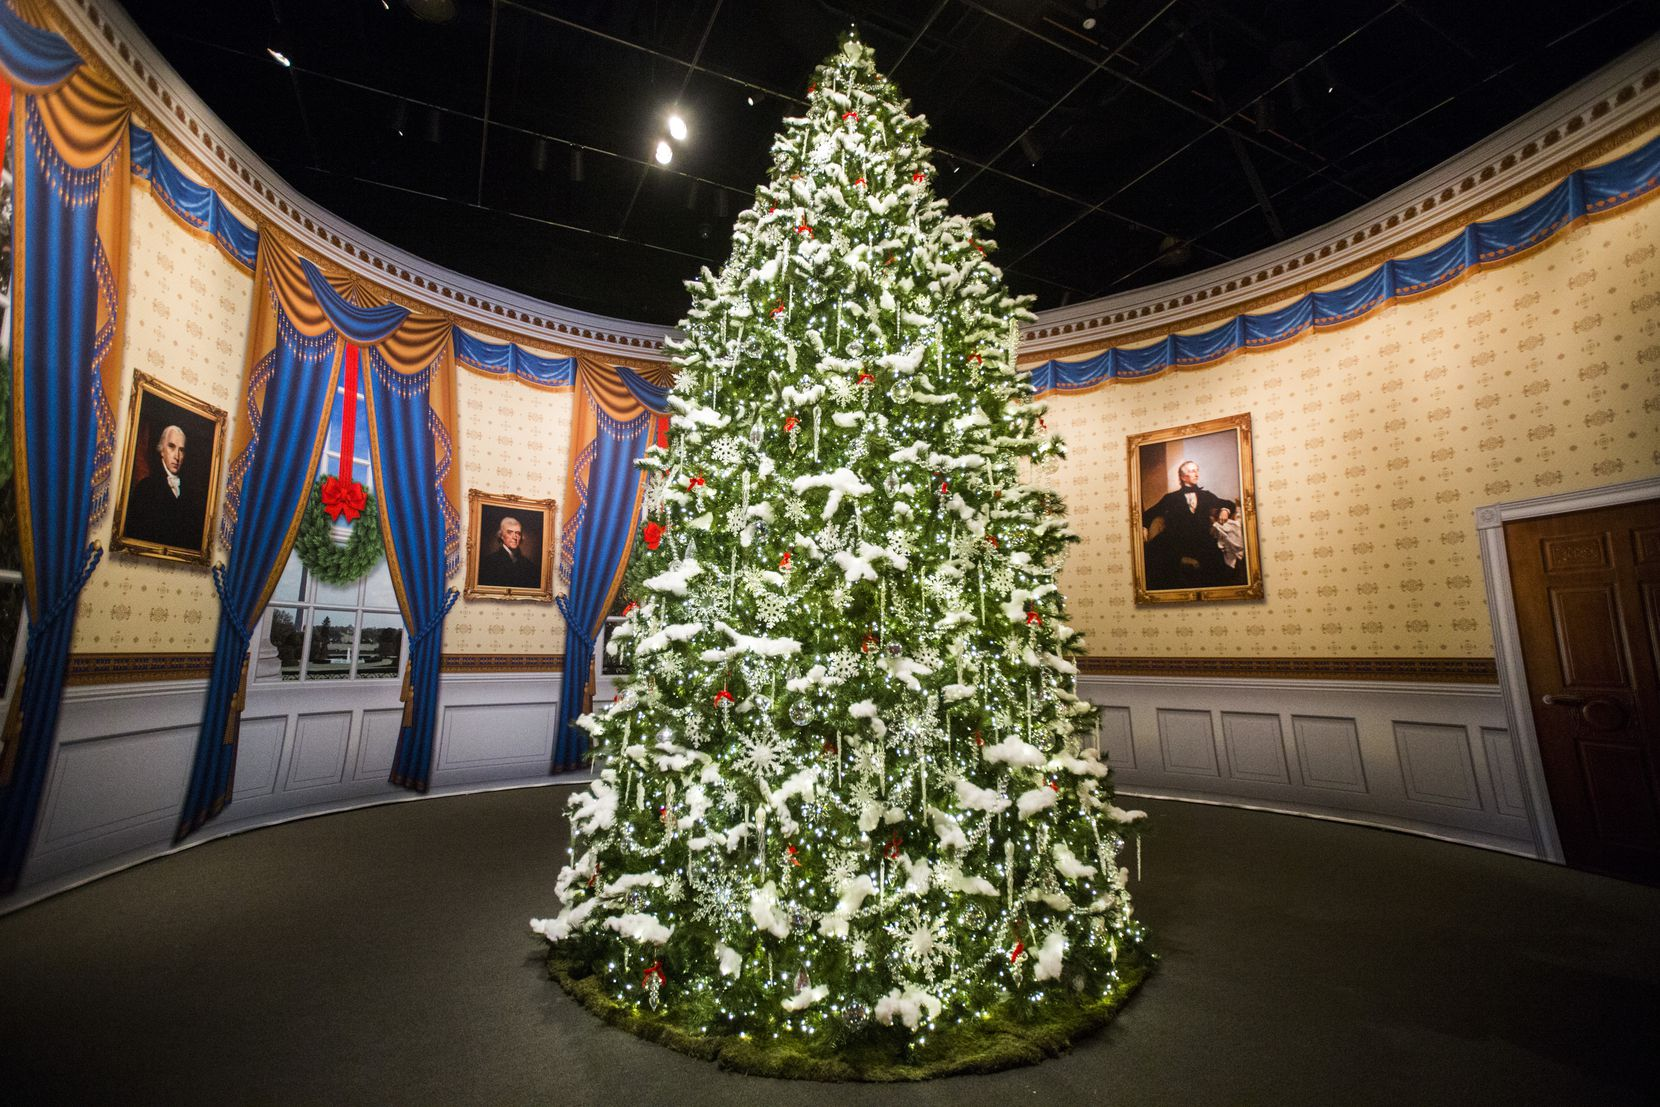 Each year, the George W. Bush Presidential Center revisits Christmas decor from a year when George W. and Laura Bush celebrated the holidays in the White House.